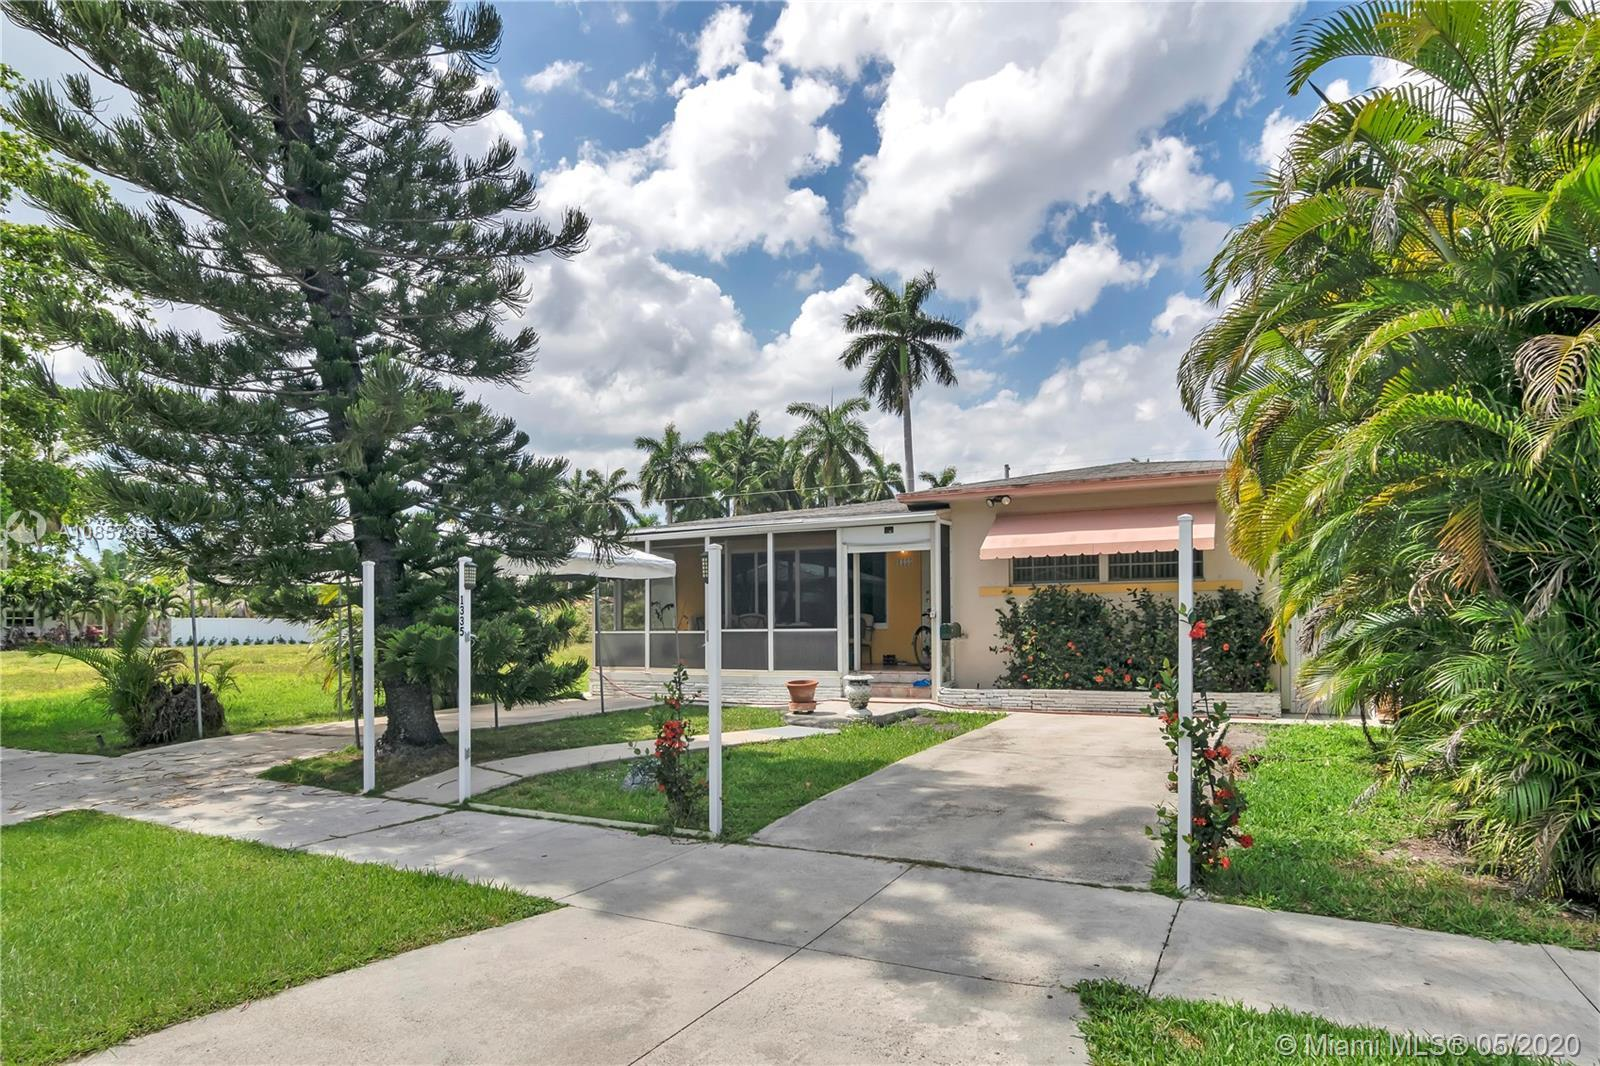 FANTASTIC LOCATION IN HOLLYWOOD LAKES JUST STEPS AWAY FROM NORTHLAKE AND THE INTRACOASTAL...3 BEDROO